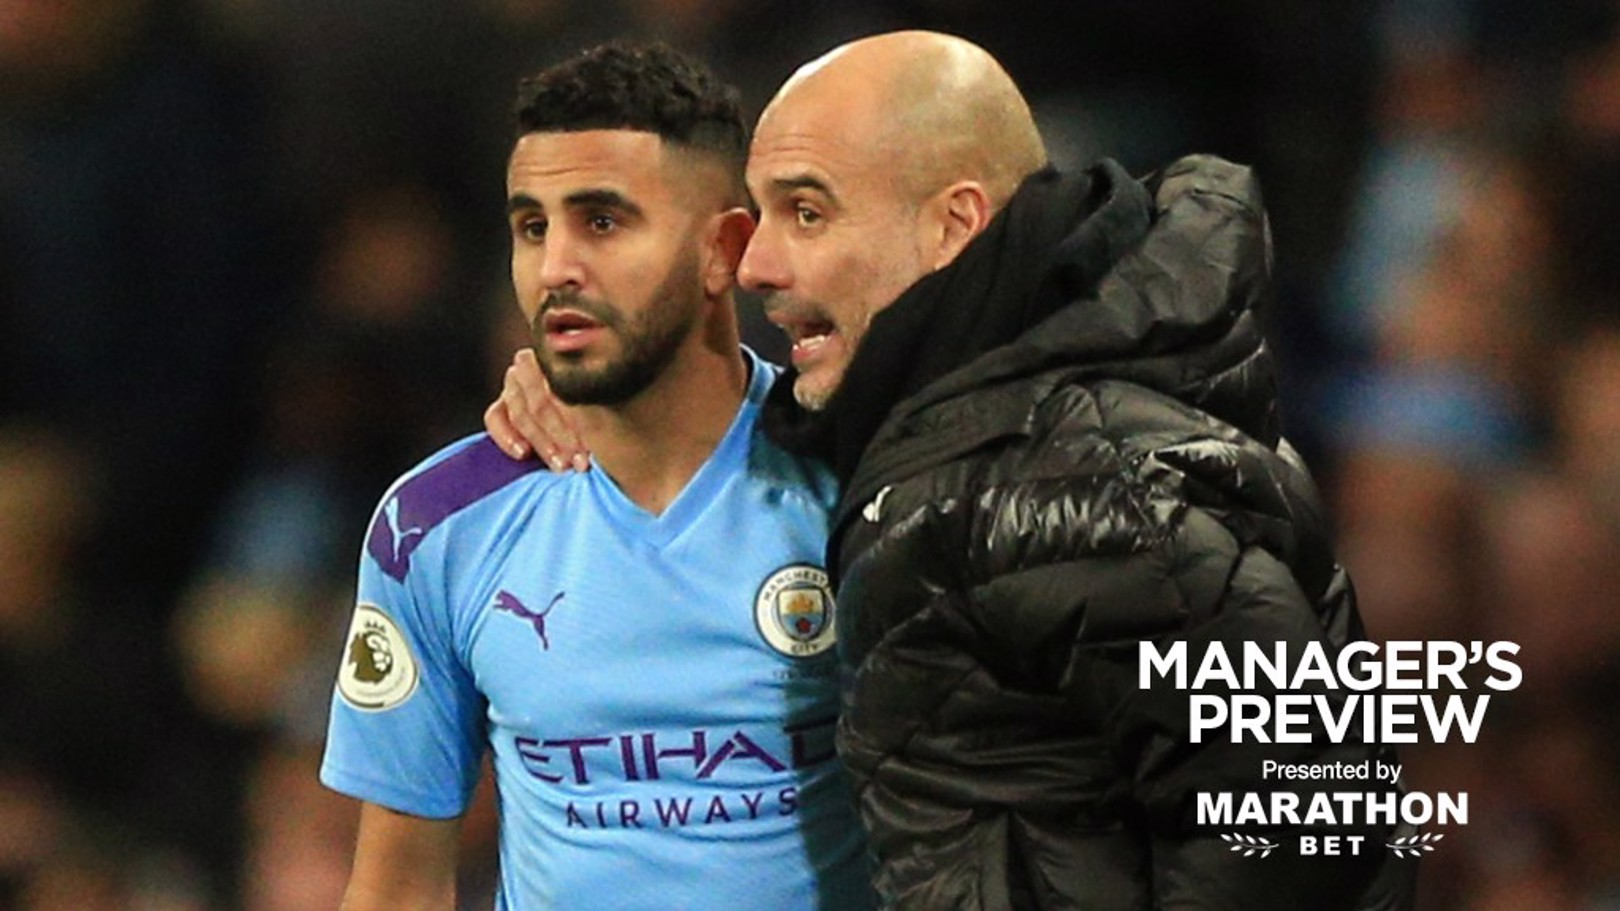 IMPRESSED: Pep Guardiola saluted Riyad Mahrez' form ahead of City's game against Leicester.